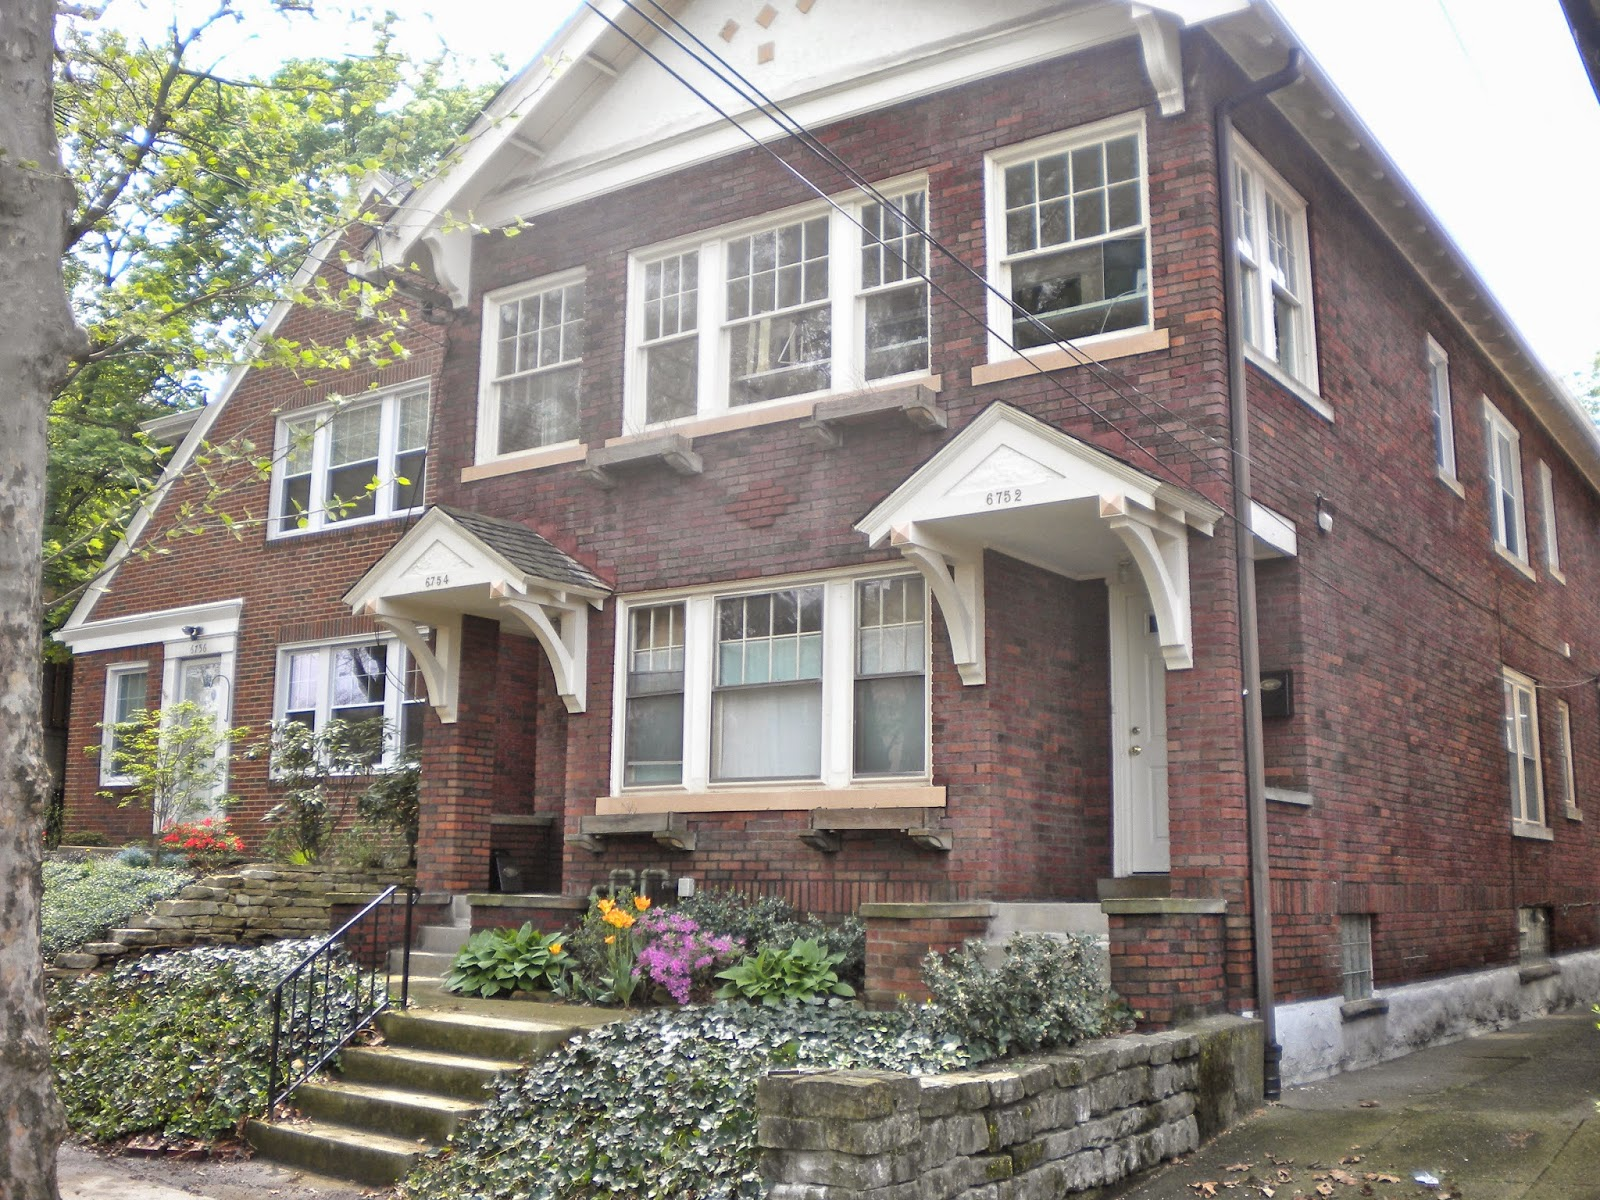 Auto Garage For Sale Pittsburgh: 6752-54 Juniata Place Pittsburgh, PA 15208 DUPLEX FOR SALE